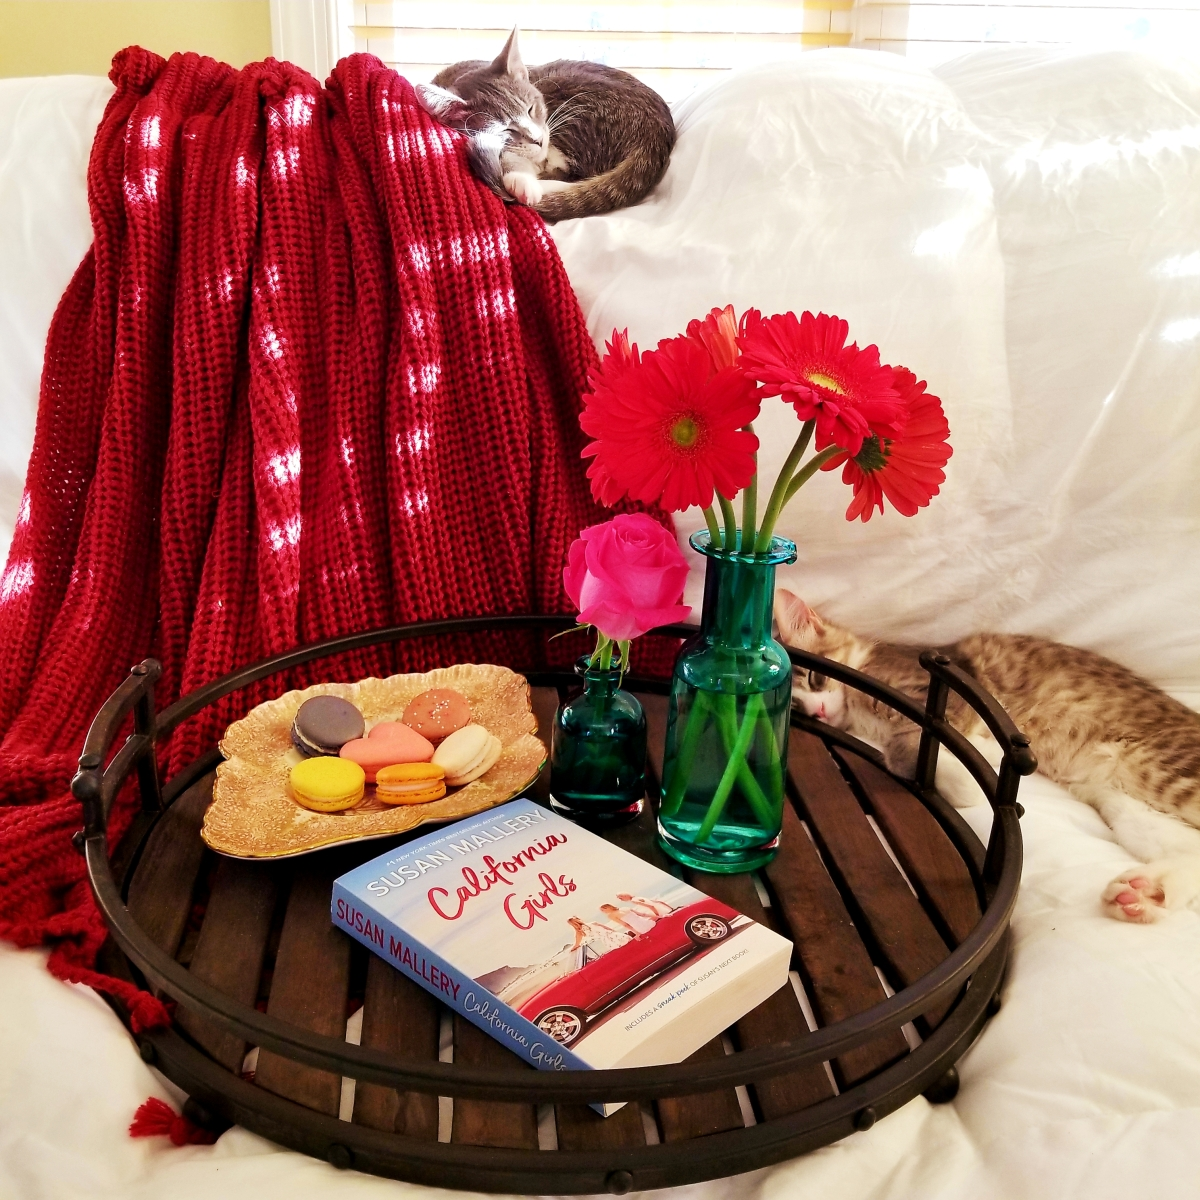 California Girls by Susan Mallery #bookreview #tarheelreader #thrcagirls @susanmallery @harlequinbooks @tlcbooktours #californiagirlsbook #blogtour